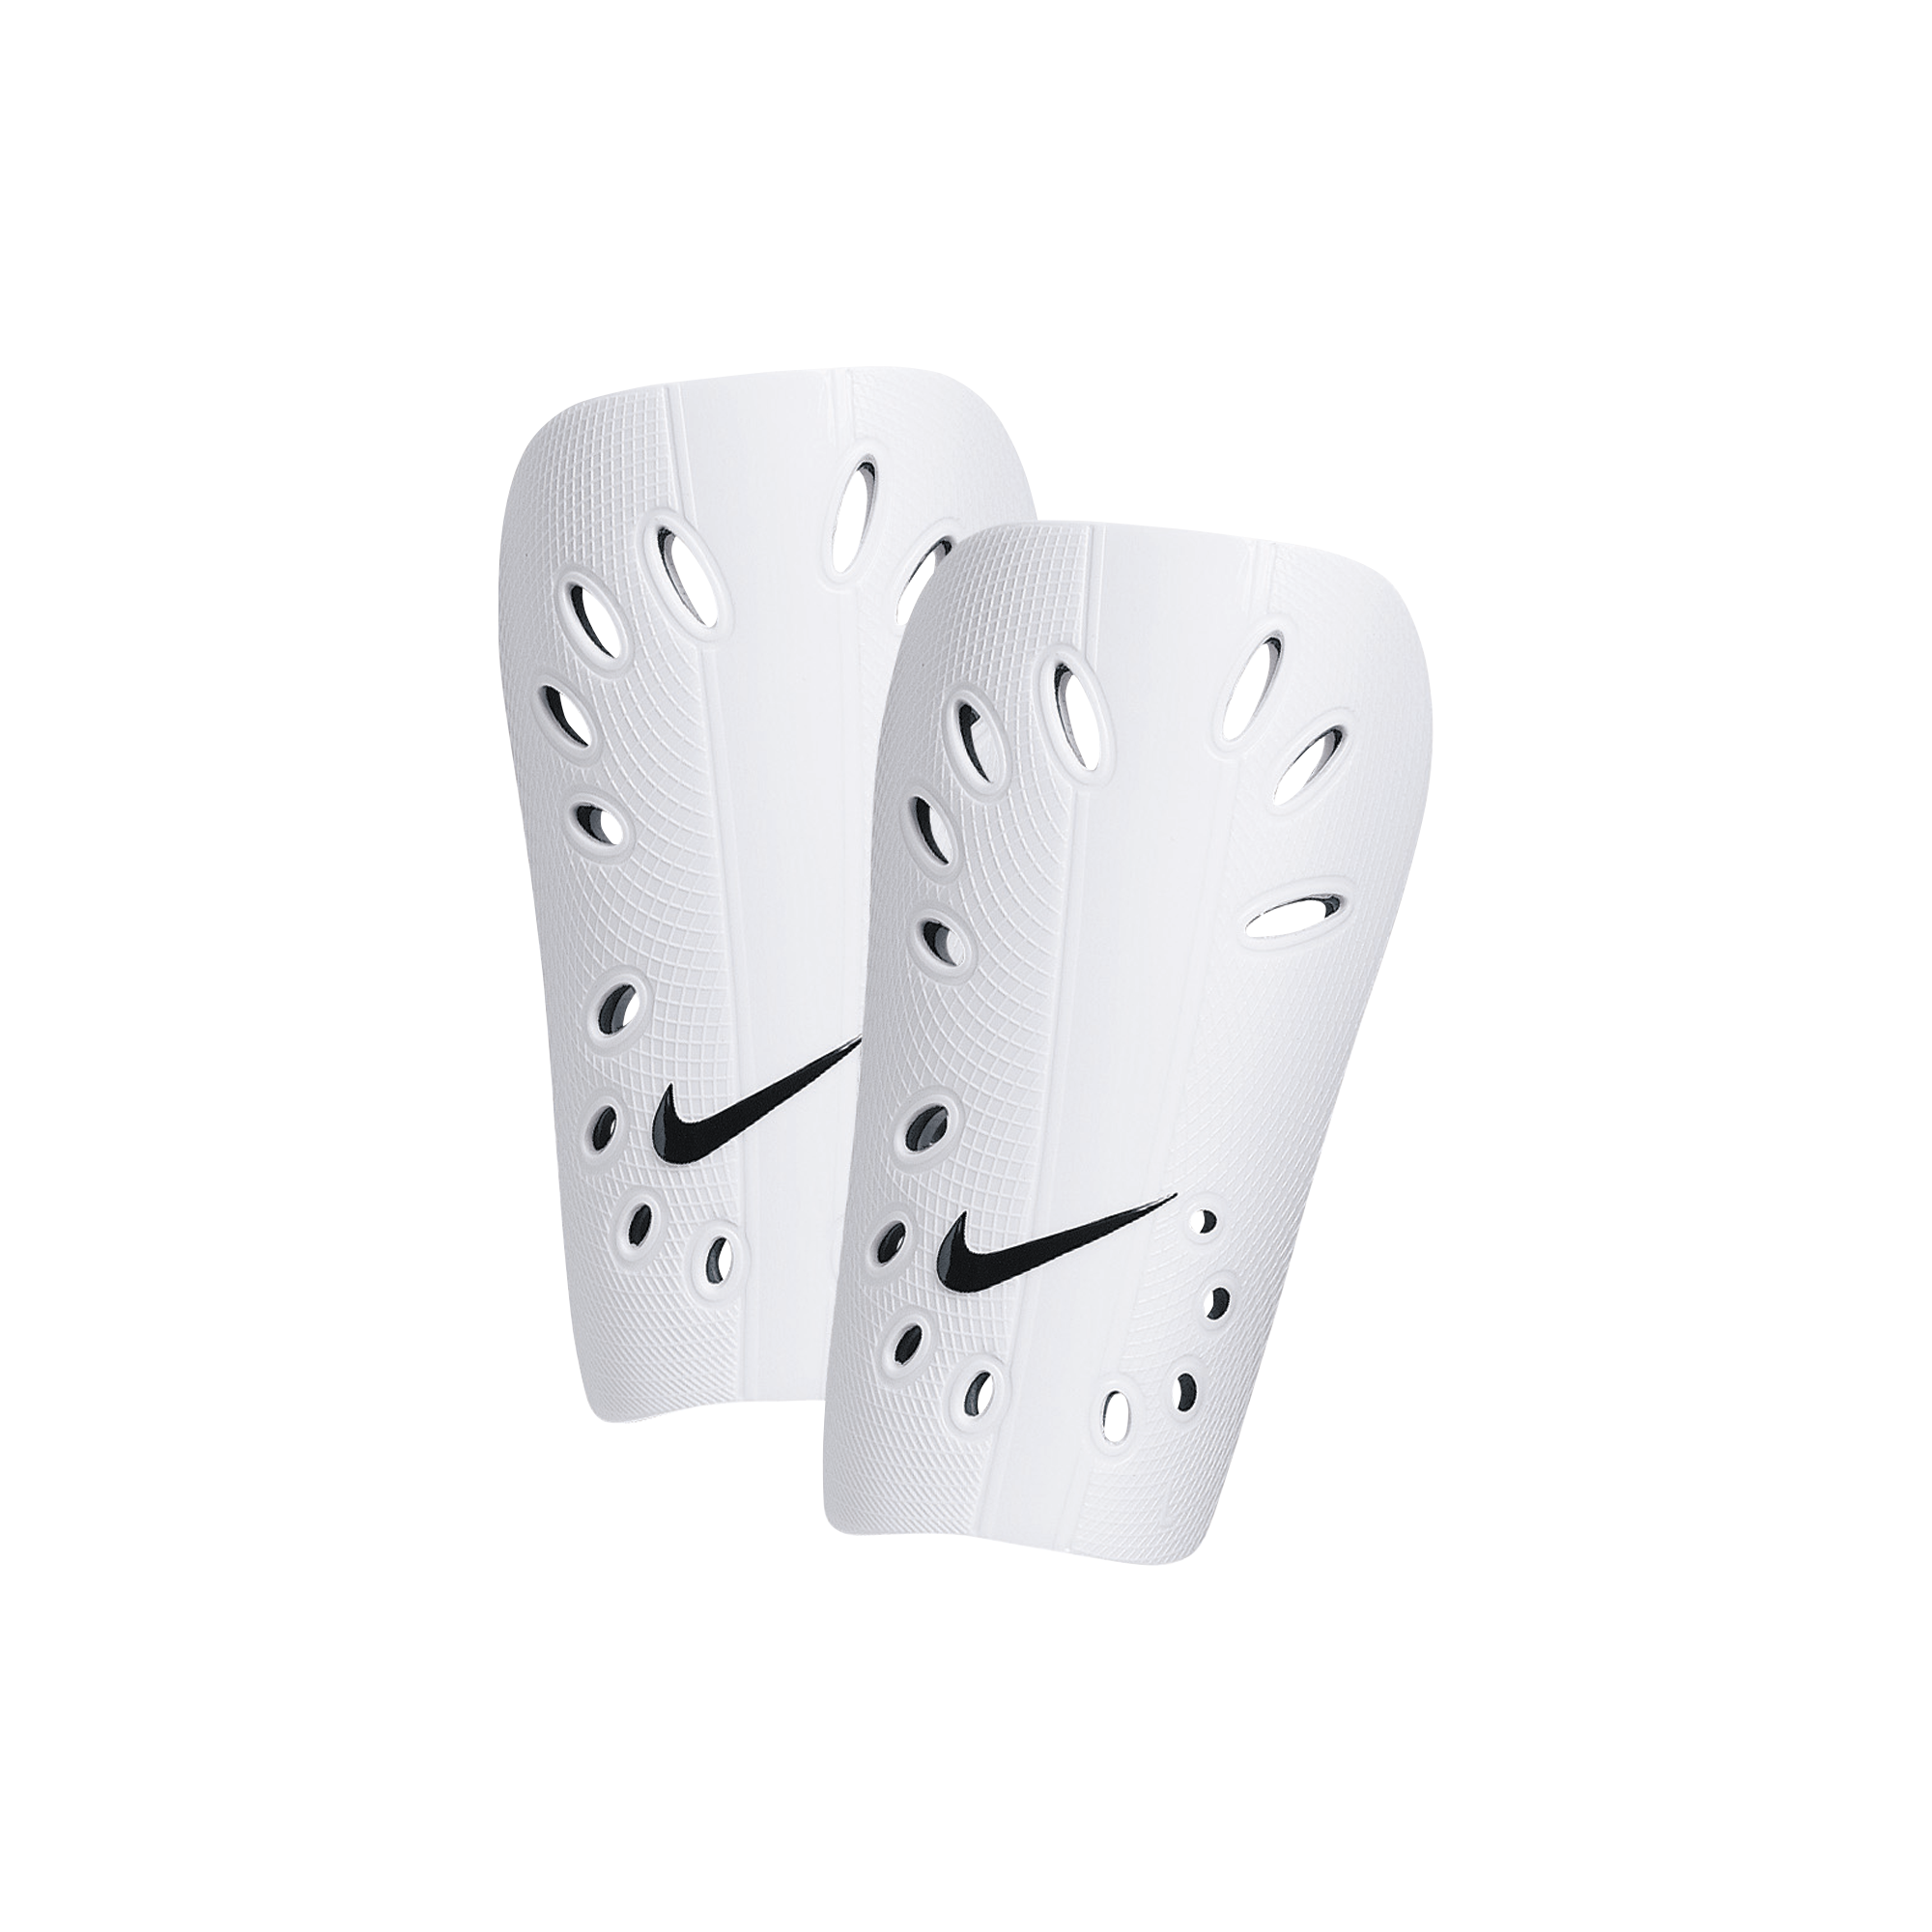 Nike J Guard Shinpads